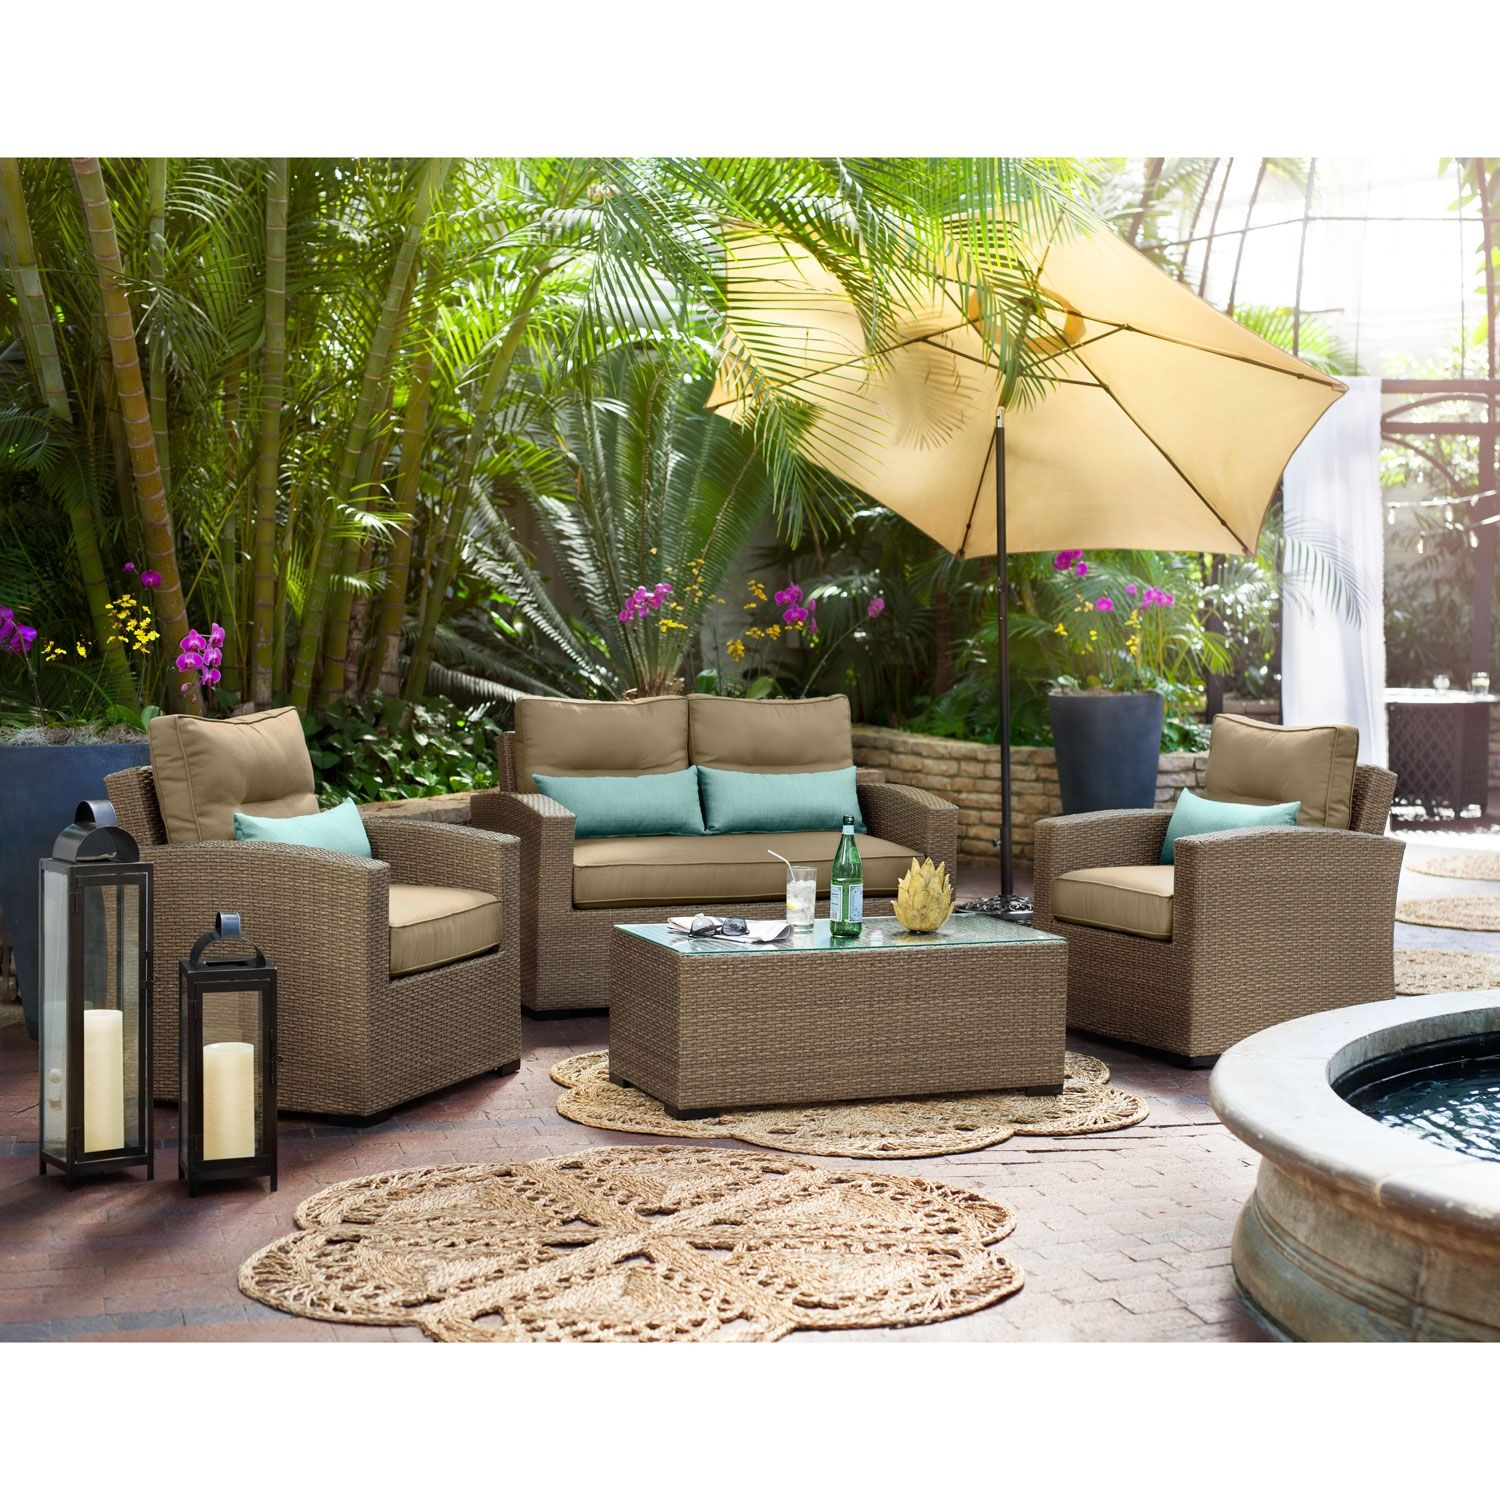 Why Not Beautify Your Patio With Our Retreat · Value City FurnitureOutdoor  ...